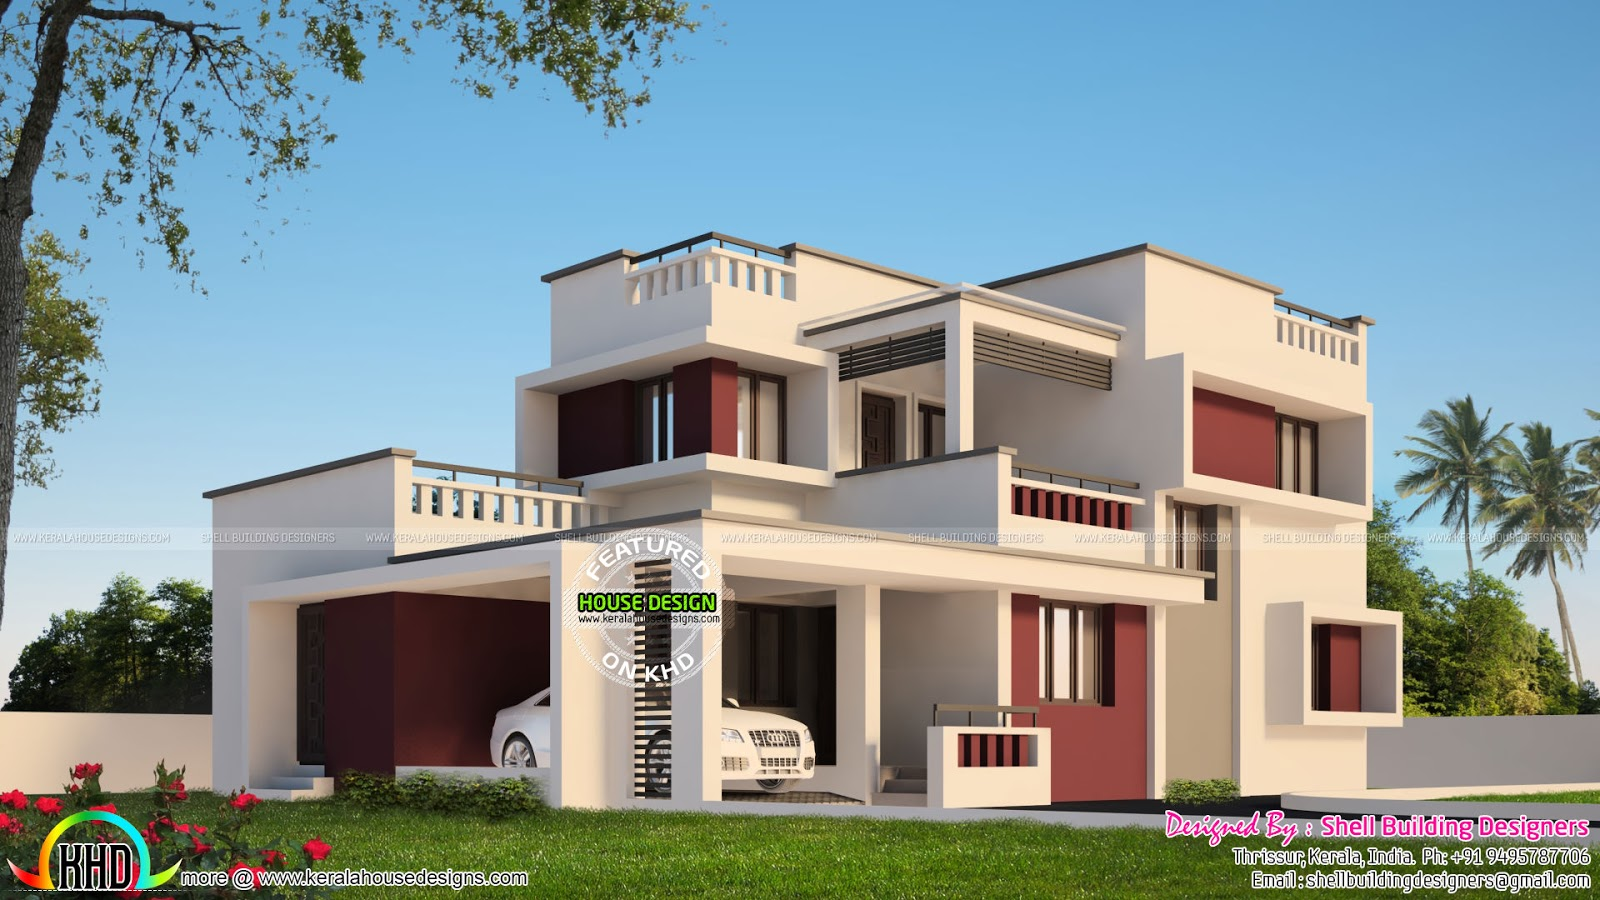 Box type modern home kerala home design and floor plans for Modern box type house design